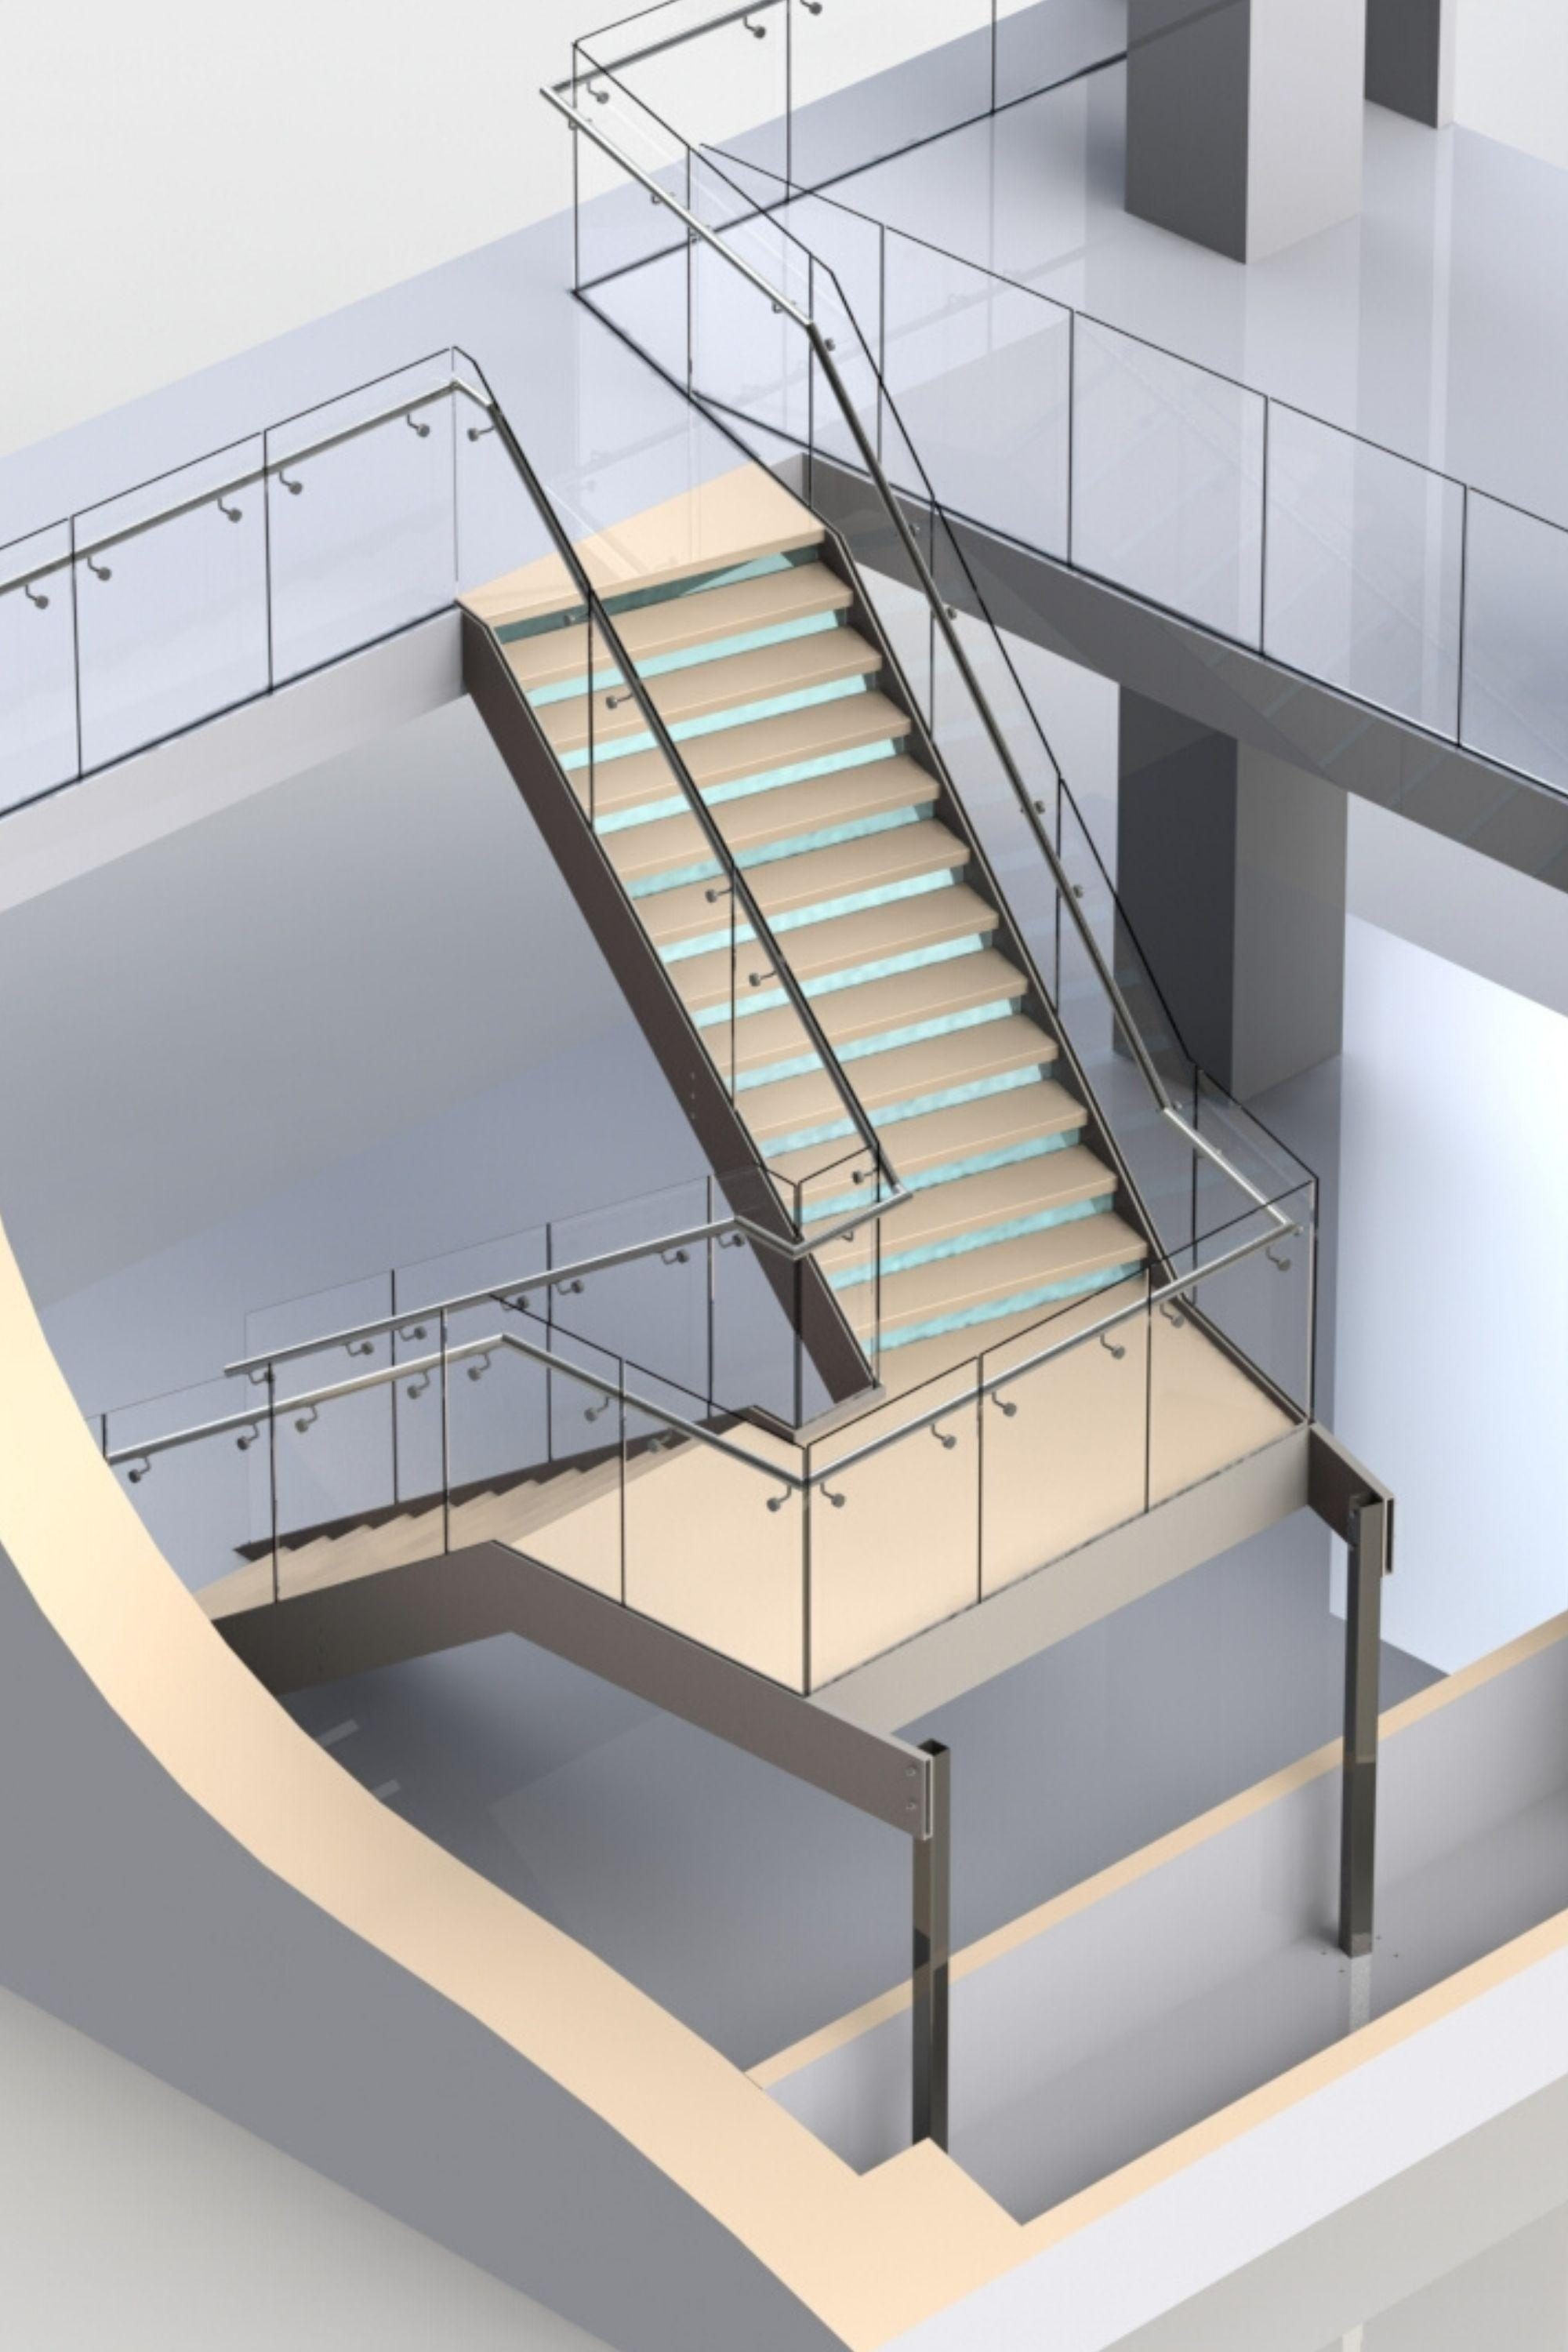 Render of staircase design